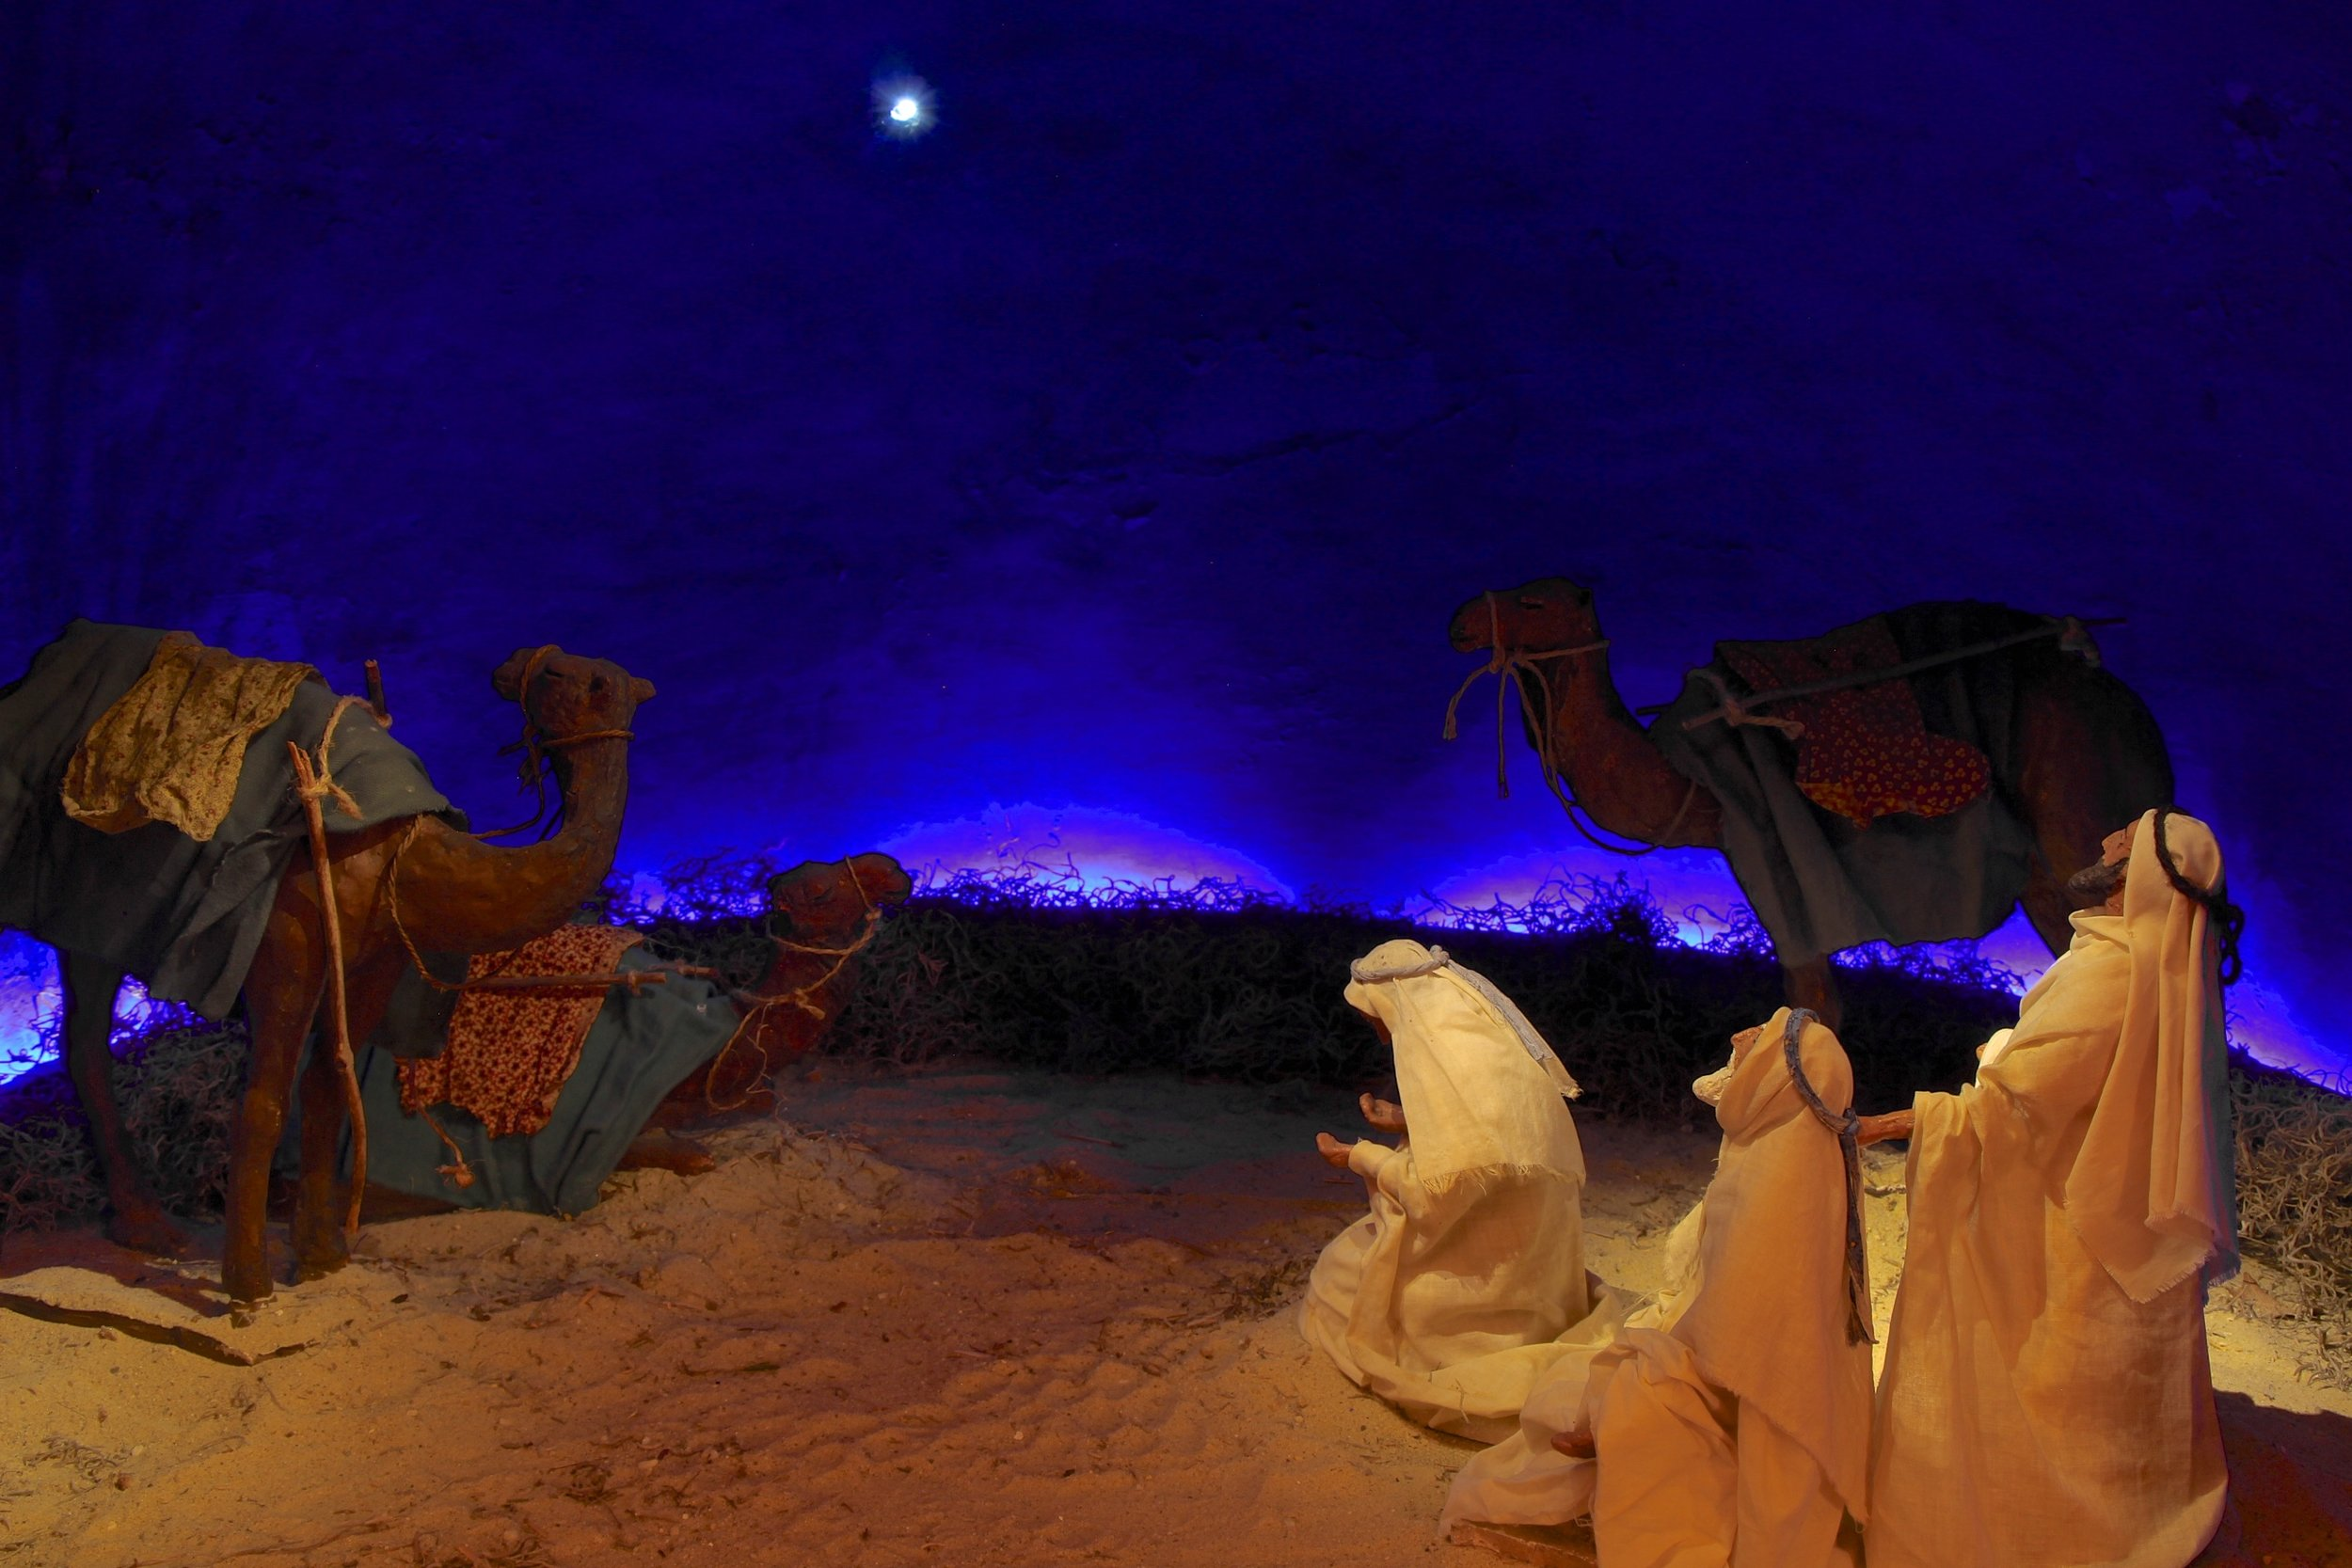 Figure 1: One of three Nativity scenes designed in the 1920s by Bryn Athyn artist Winfred S. Hyatt shows the Magi gazing at the Star of Bethlehem. The scenes were commissioned by Raymond and Mildred Pitcairn for use in their home at Cairnwood, where they were considered to be the most important element in the elaborate Christmas decorations in the parlor hall. A letter written by Raymond Pitcairn to Hyatt during the beginning of the work  (January 15, 1924) indicates his desire that historical accuracy be taken into account as well as artistic composition. When the Pitcairn family moved to Glencairn in 1939, the three-part Nativity scene moved with them. Collection of Glencairn Museum.